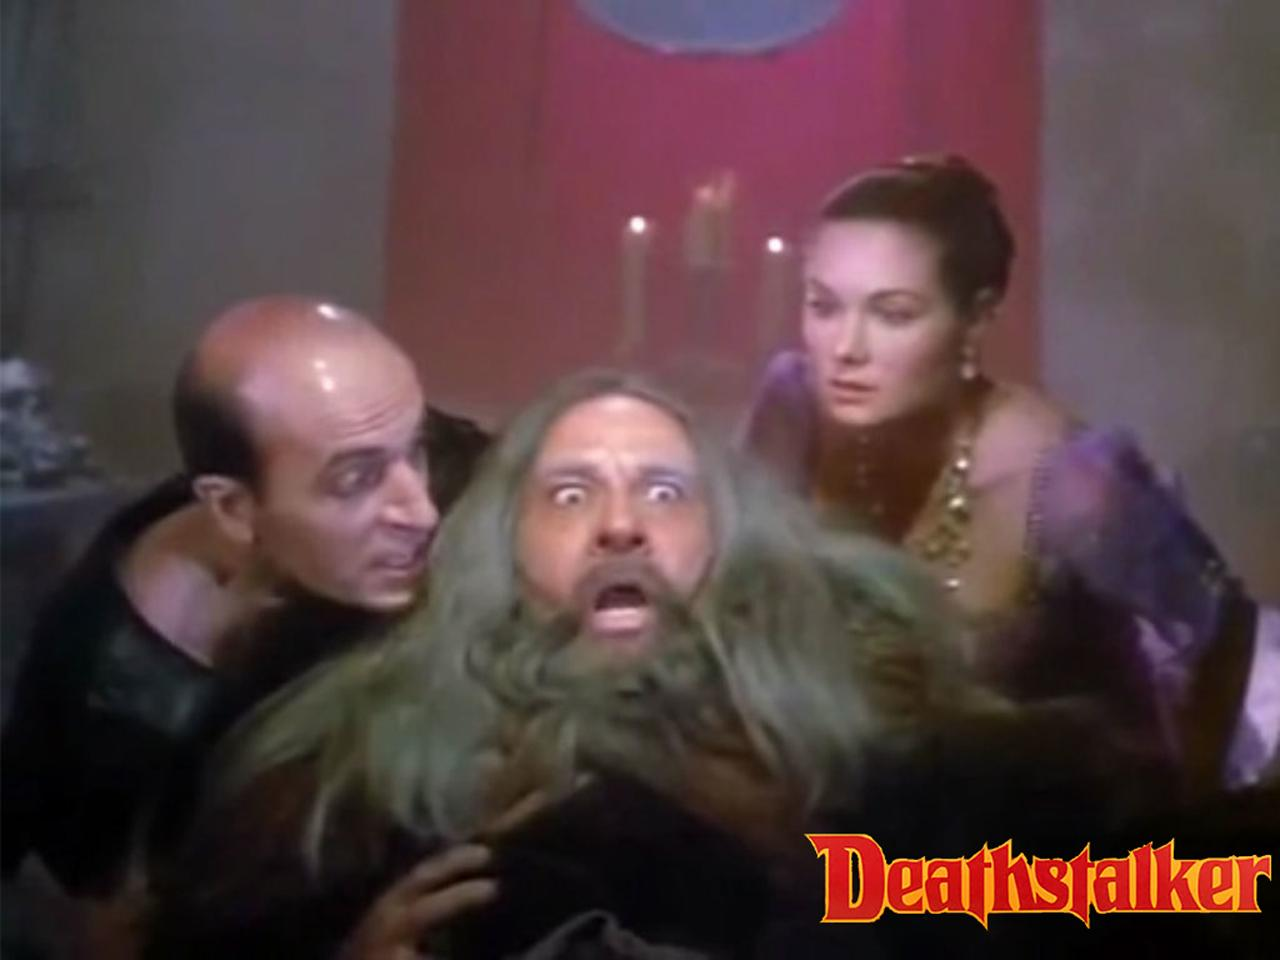 Terri Treas as Camisarde (Troxartes' mistress) in Deathstalker III: The Warriors from Hell